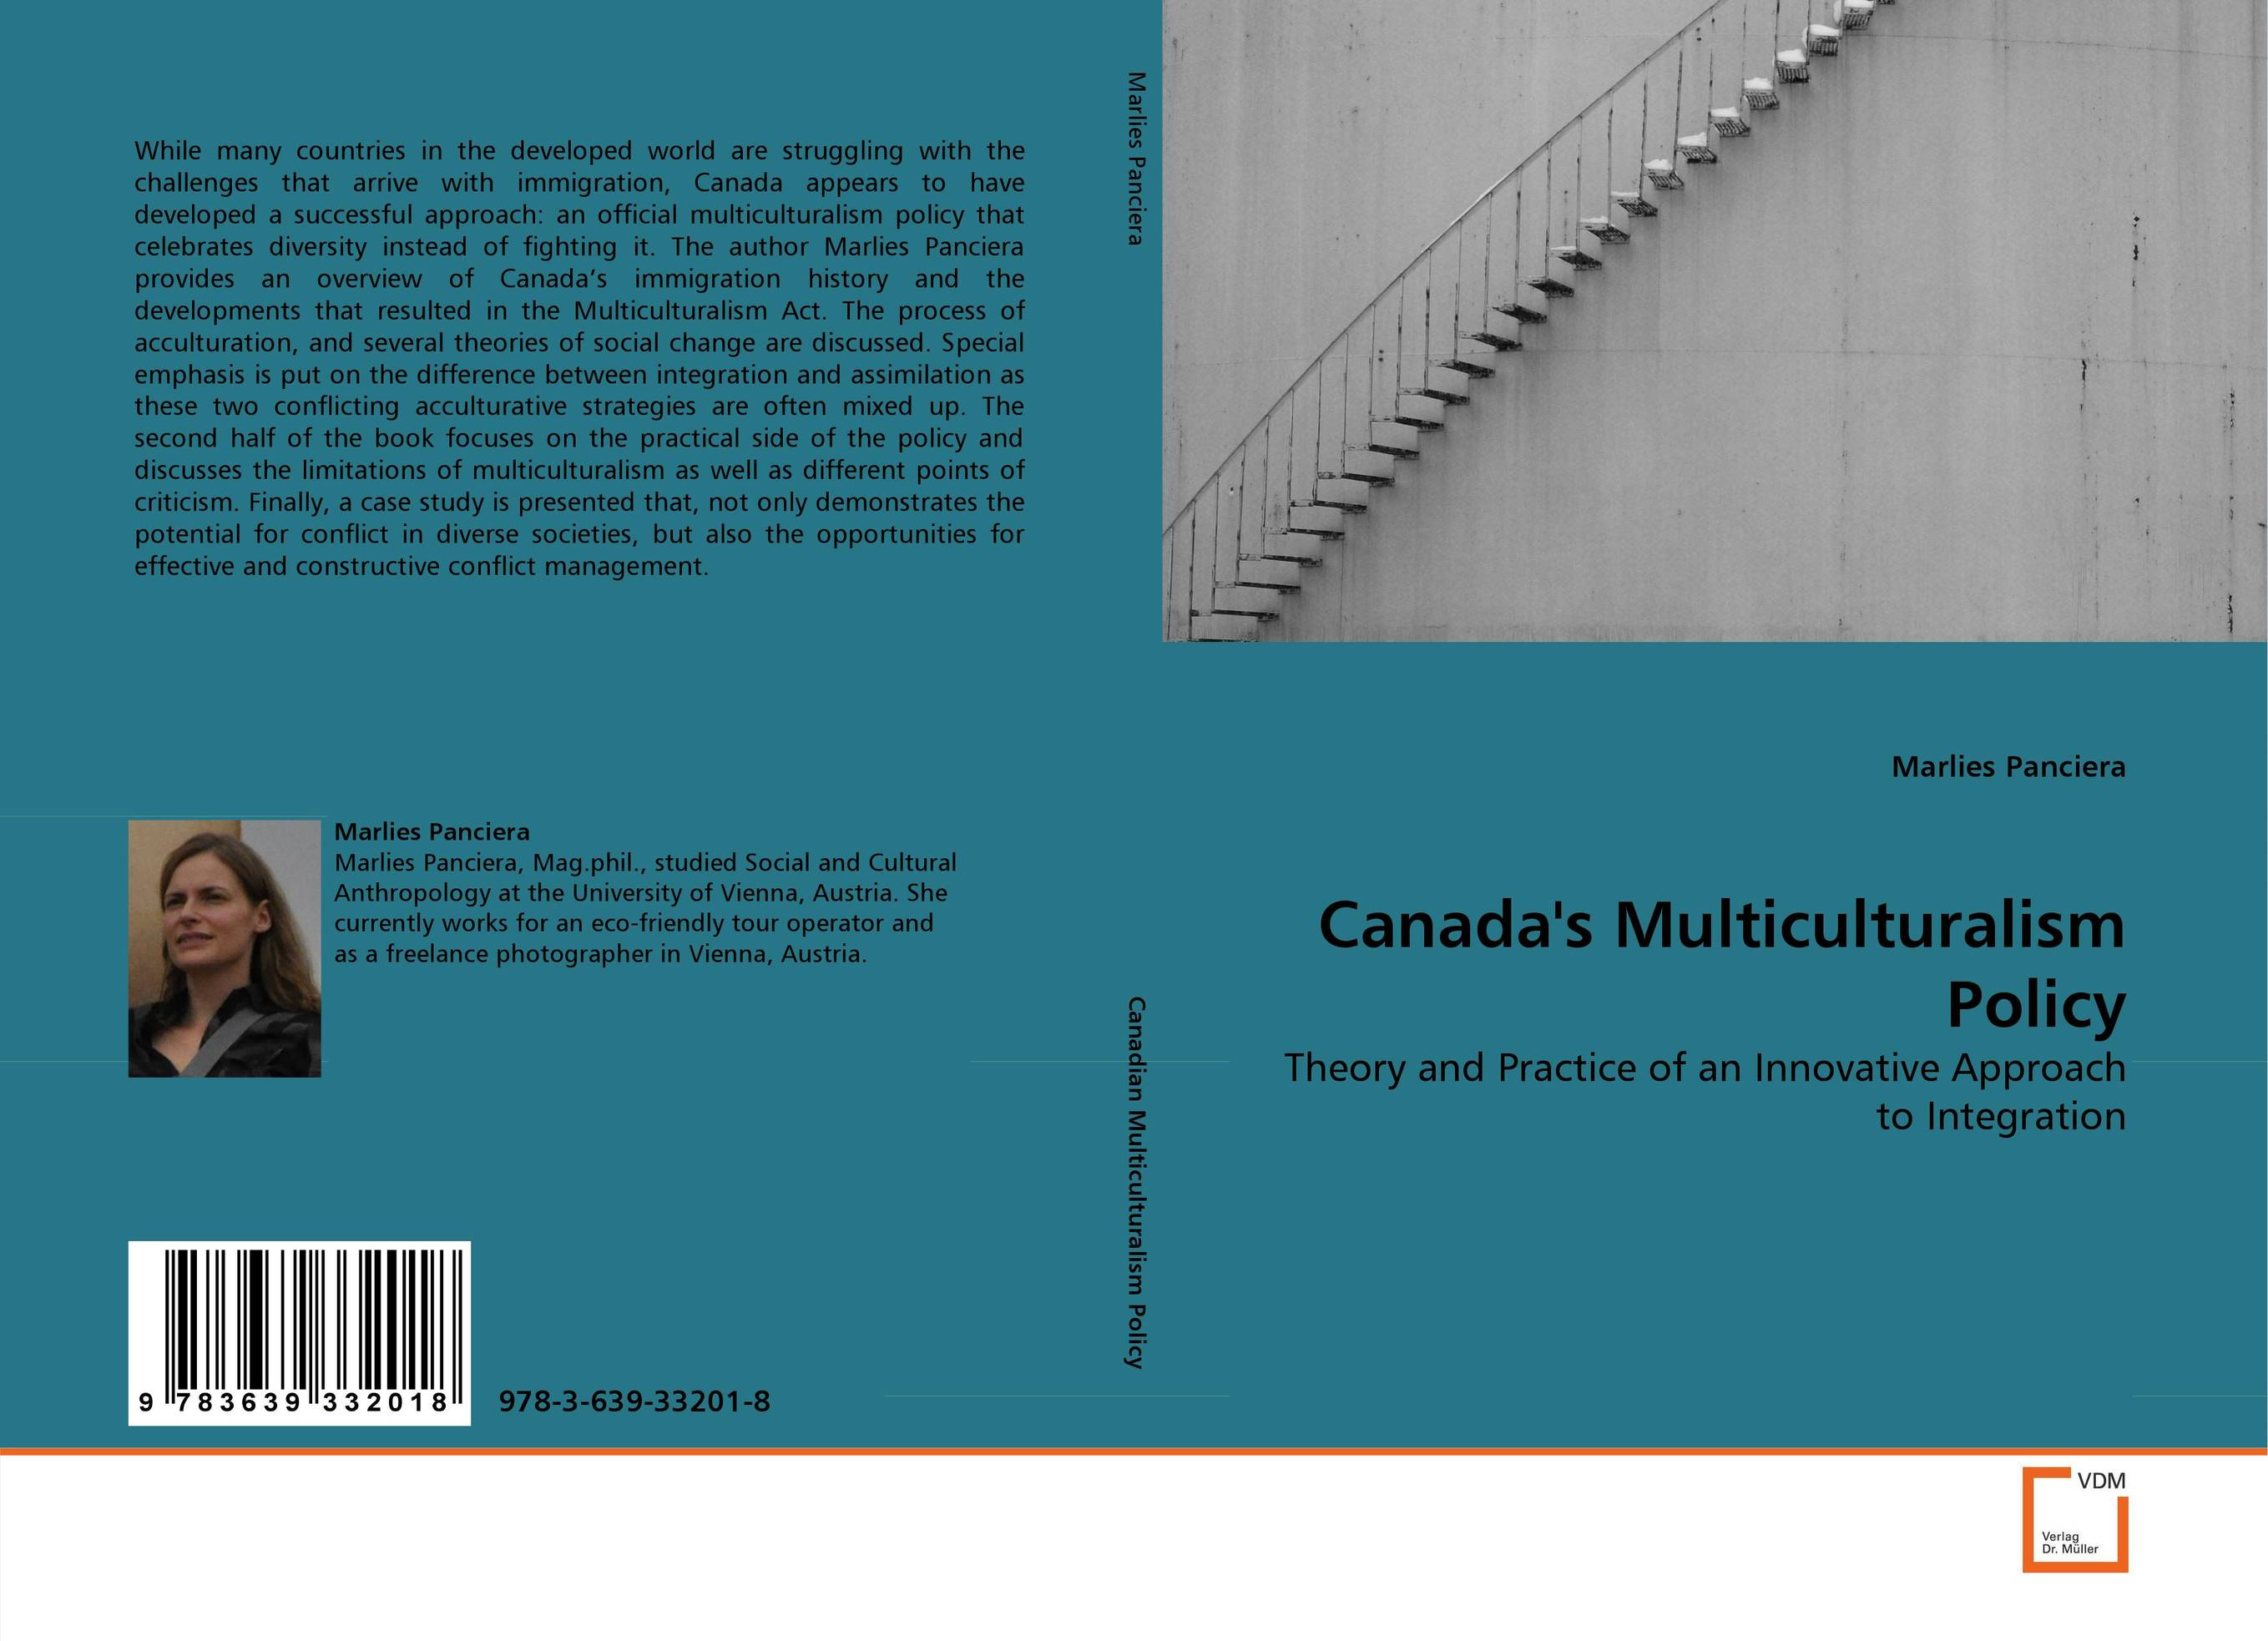 Canada''s Multiculturalism Policy sb 1070 a case study on state sponsored immigration policy